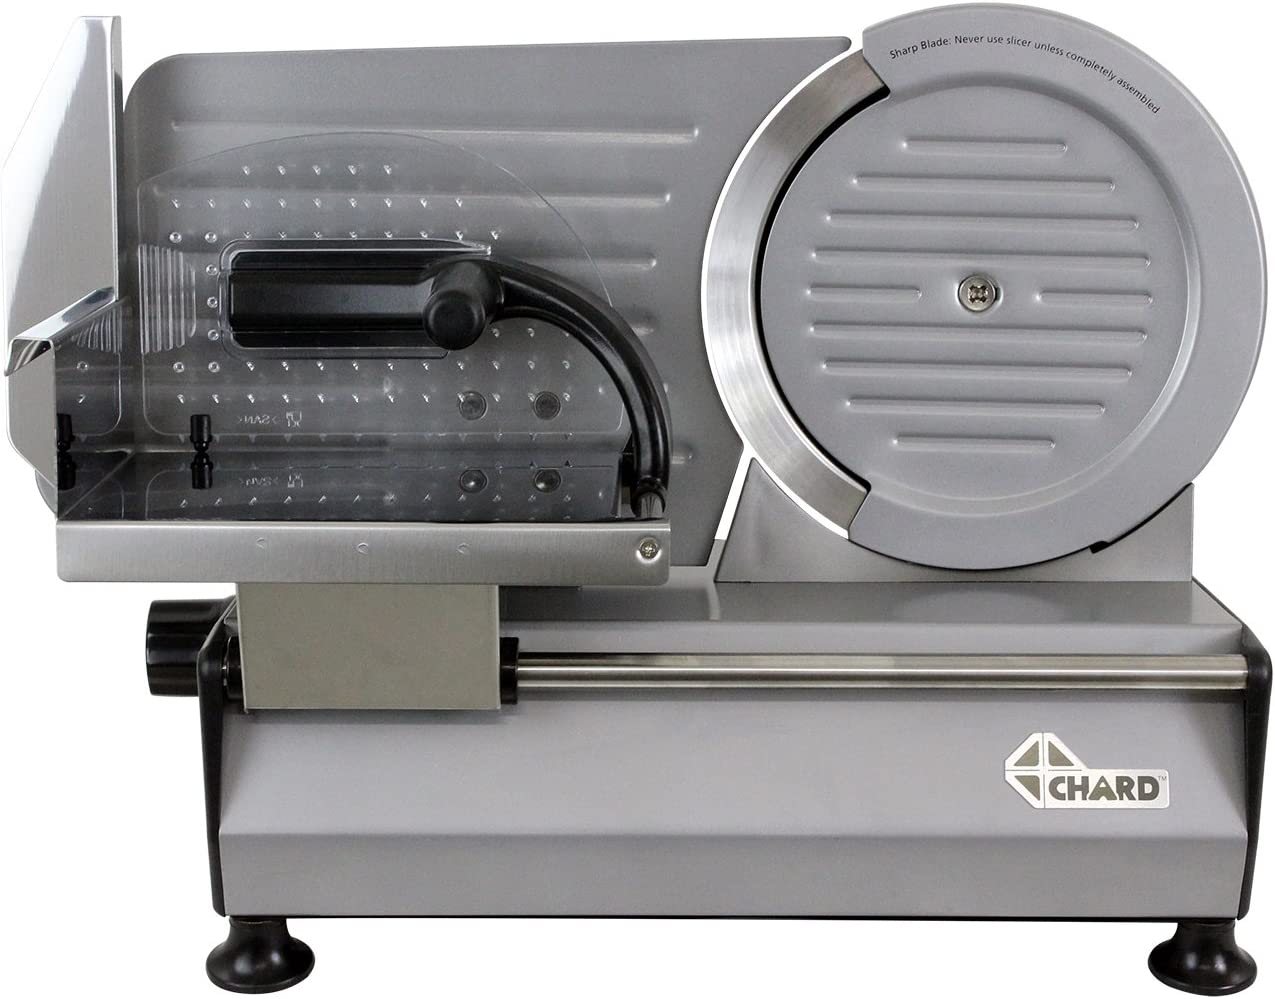 Chard FS-860, Electric Food Slicer, Stainless Steel, 8.6 inch, 150 watts